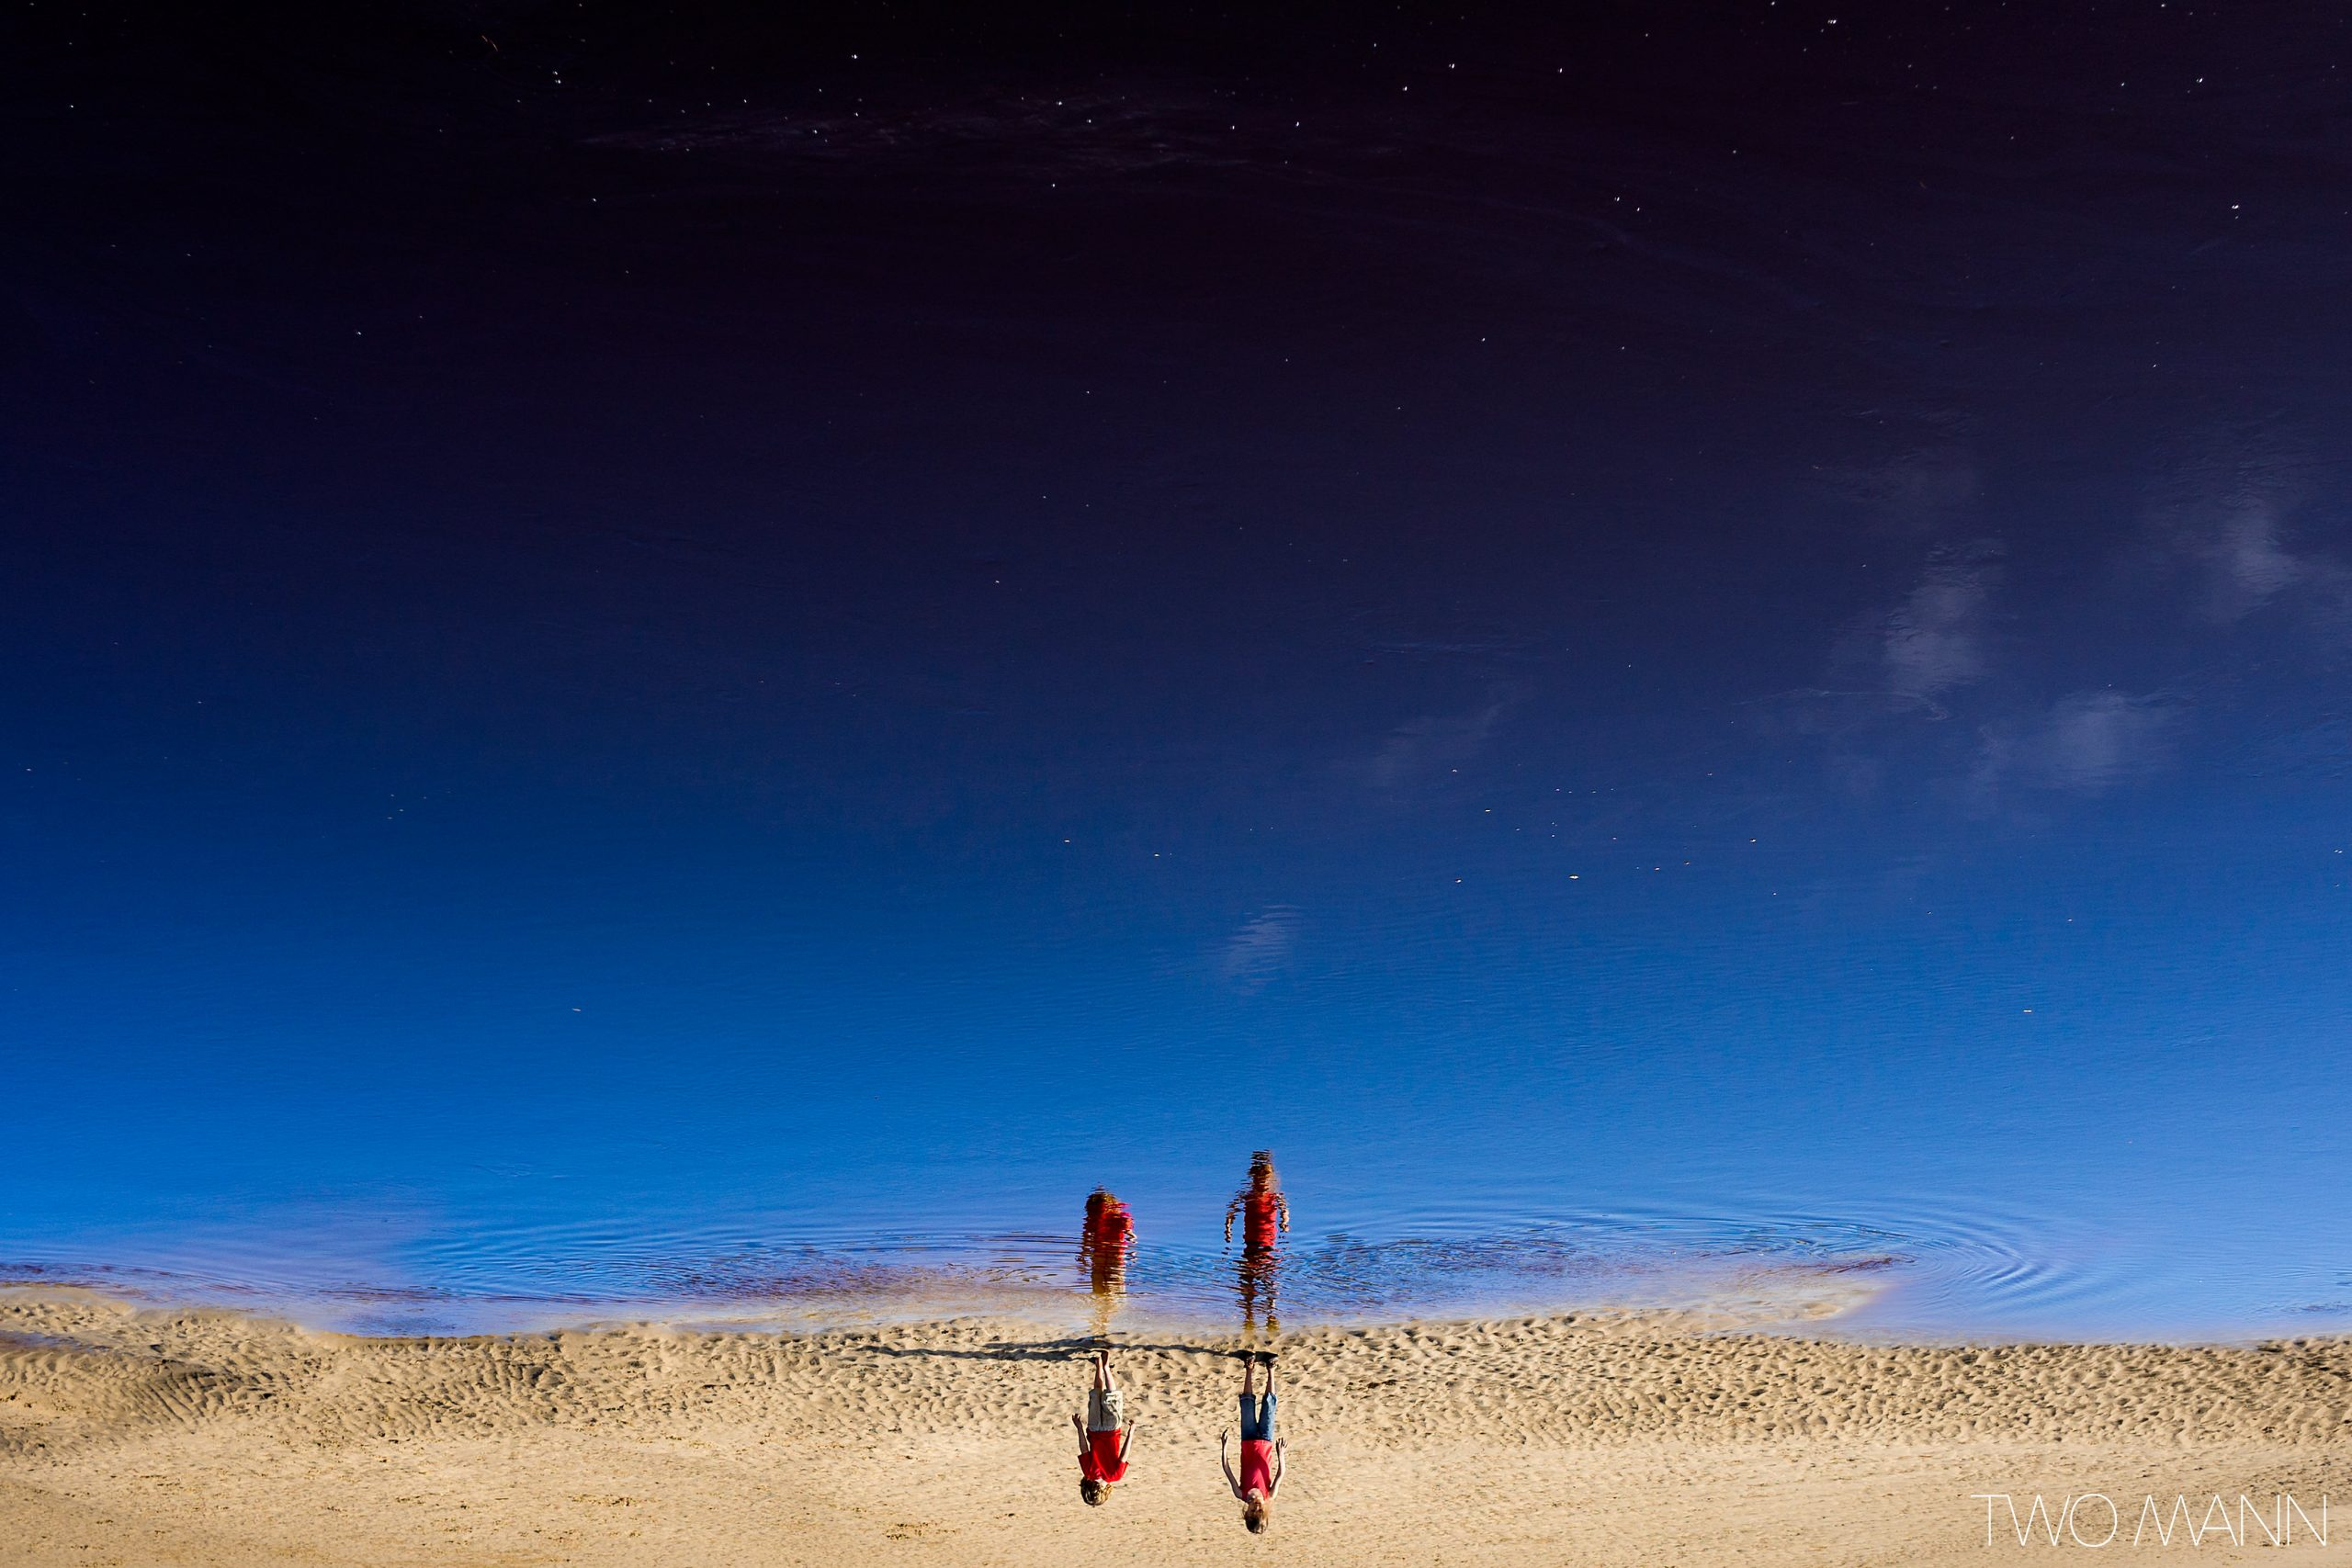 Kids wading on beach in Australia on starry night